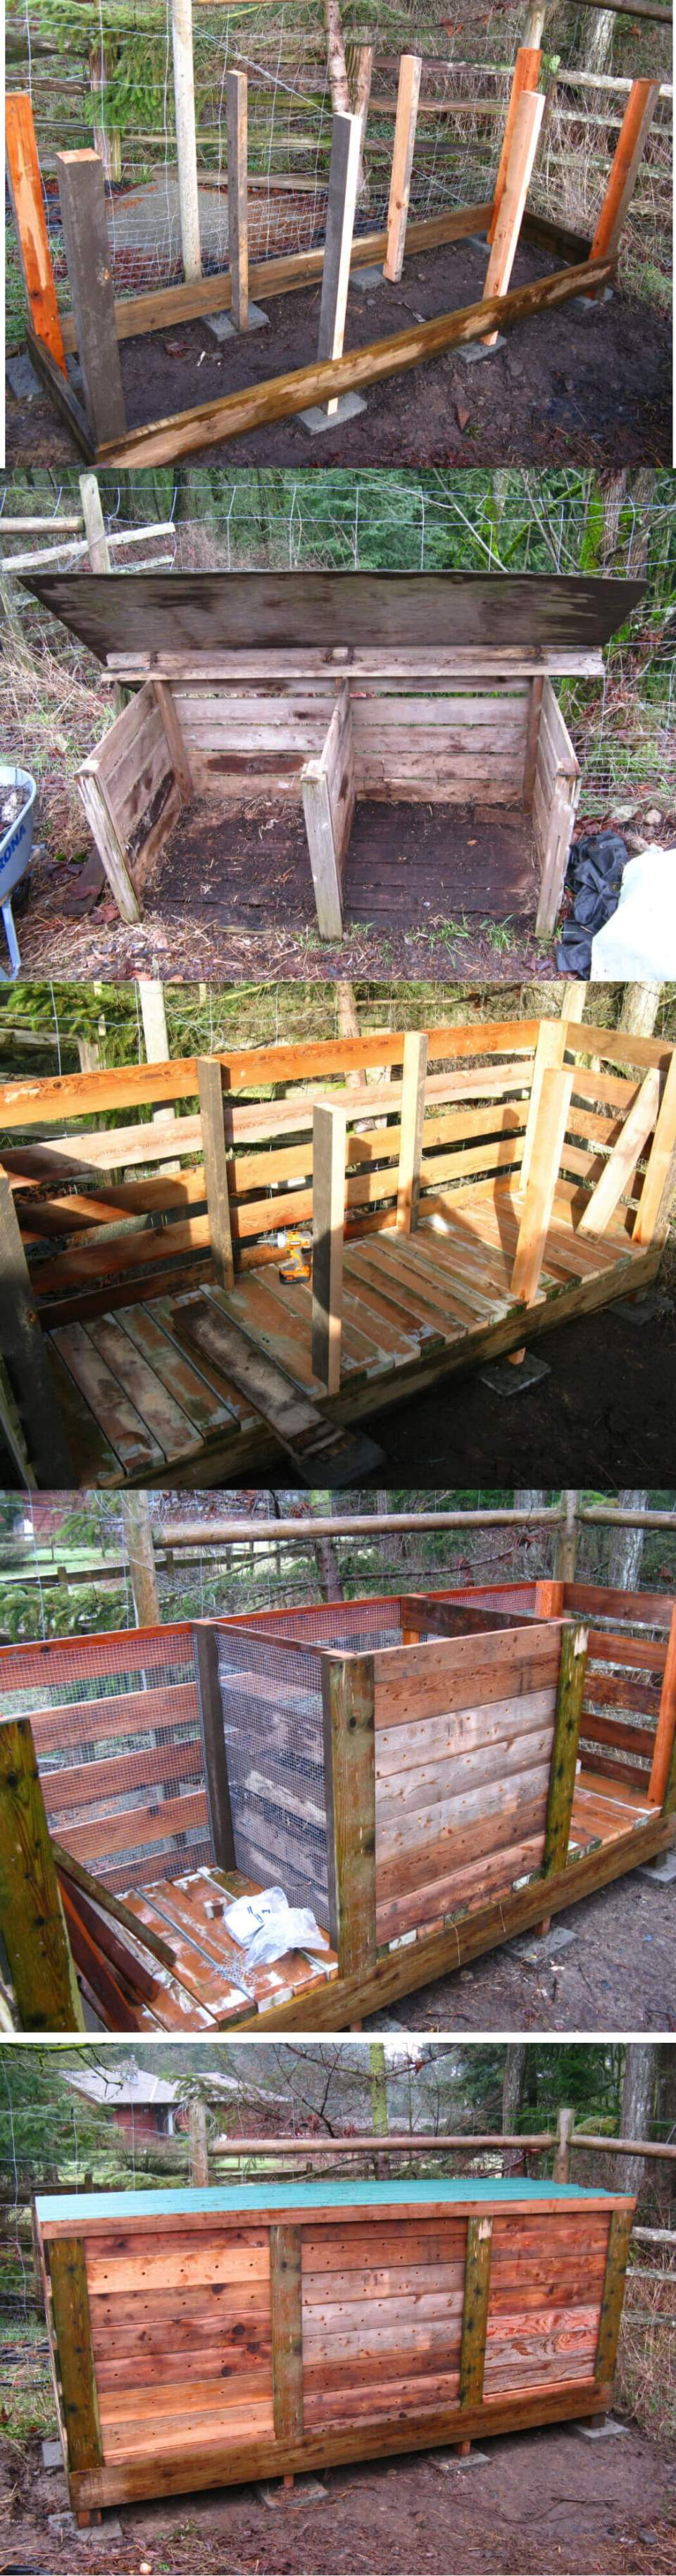 Ultimate Compost Bin | Easy Compost Bins You Can DIY On Very Low Budget - FarmFoodFamily.com